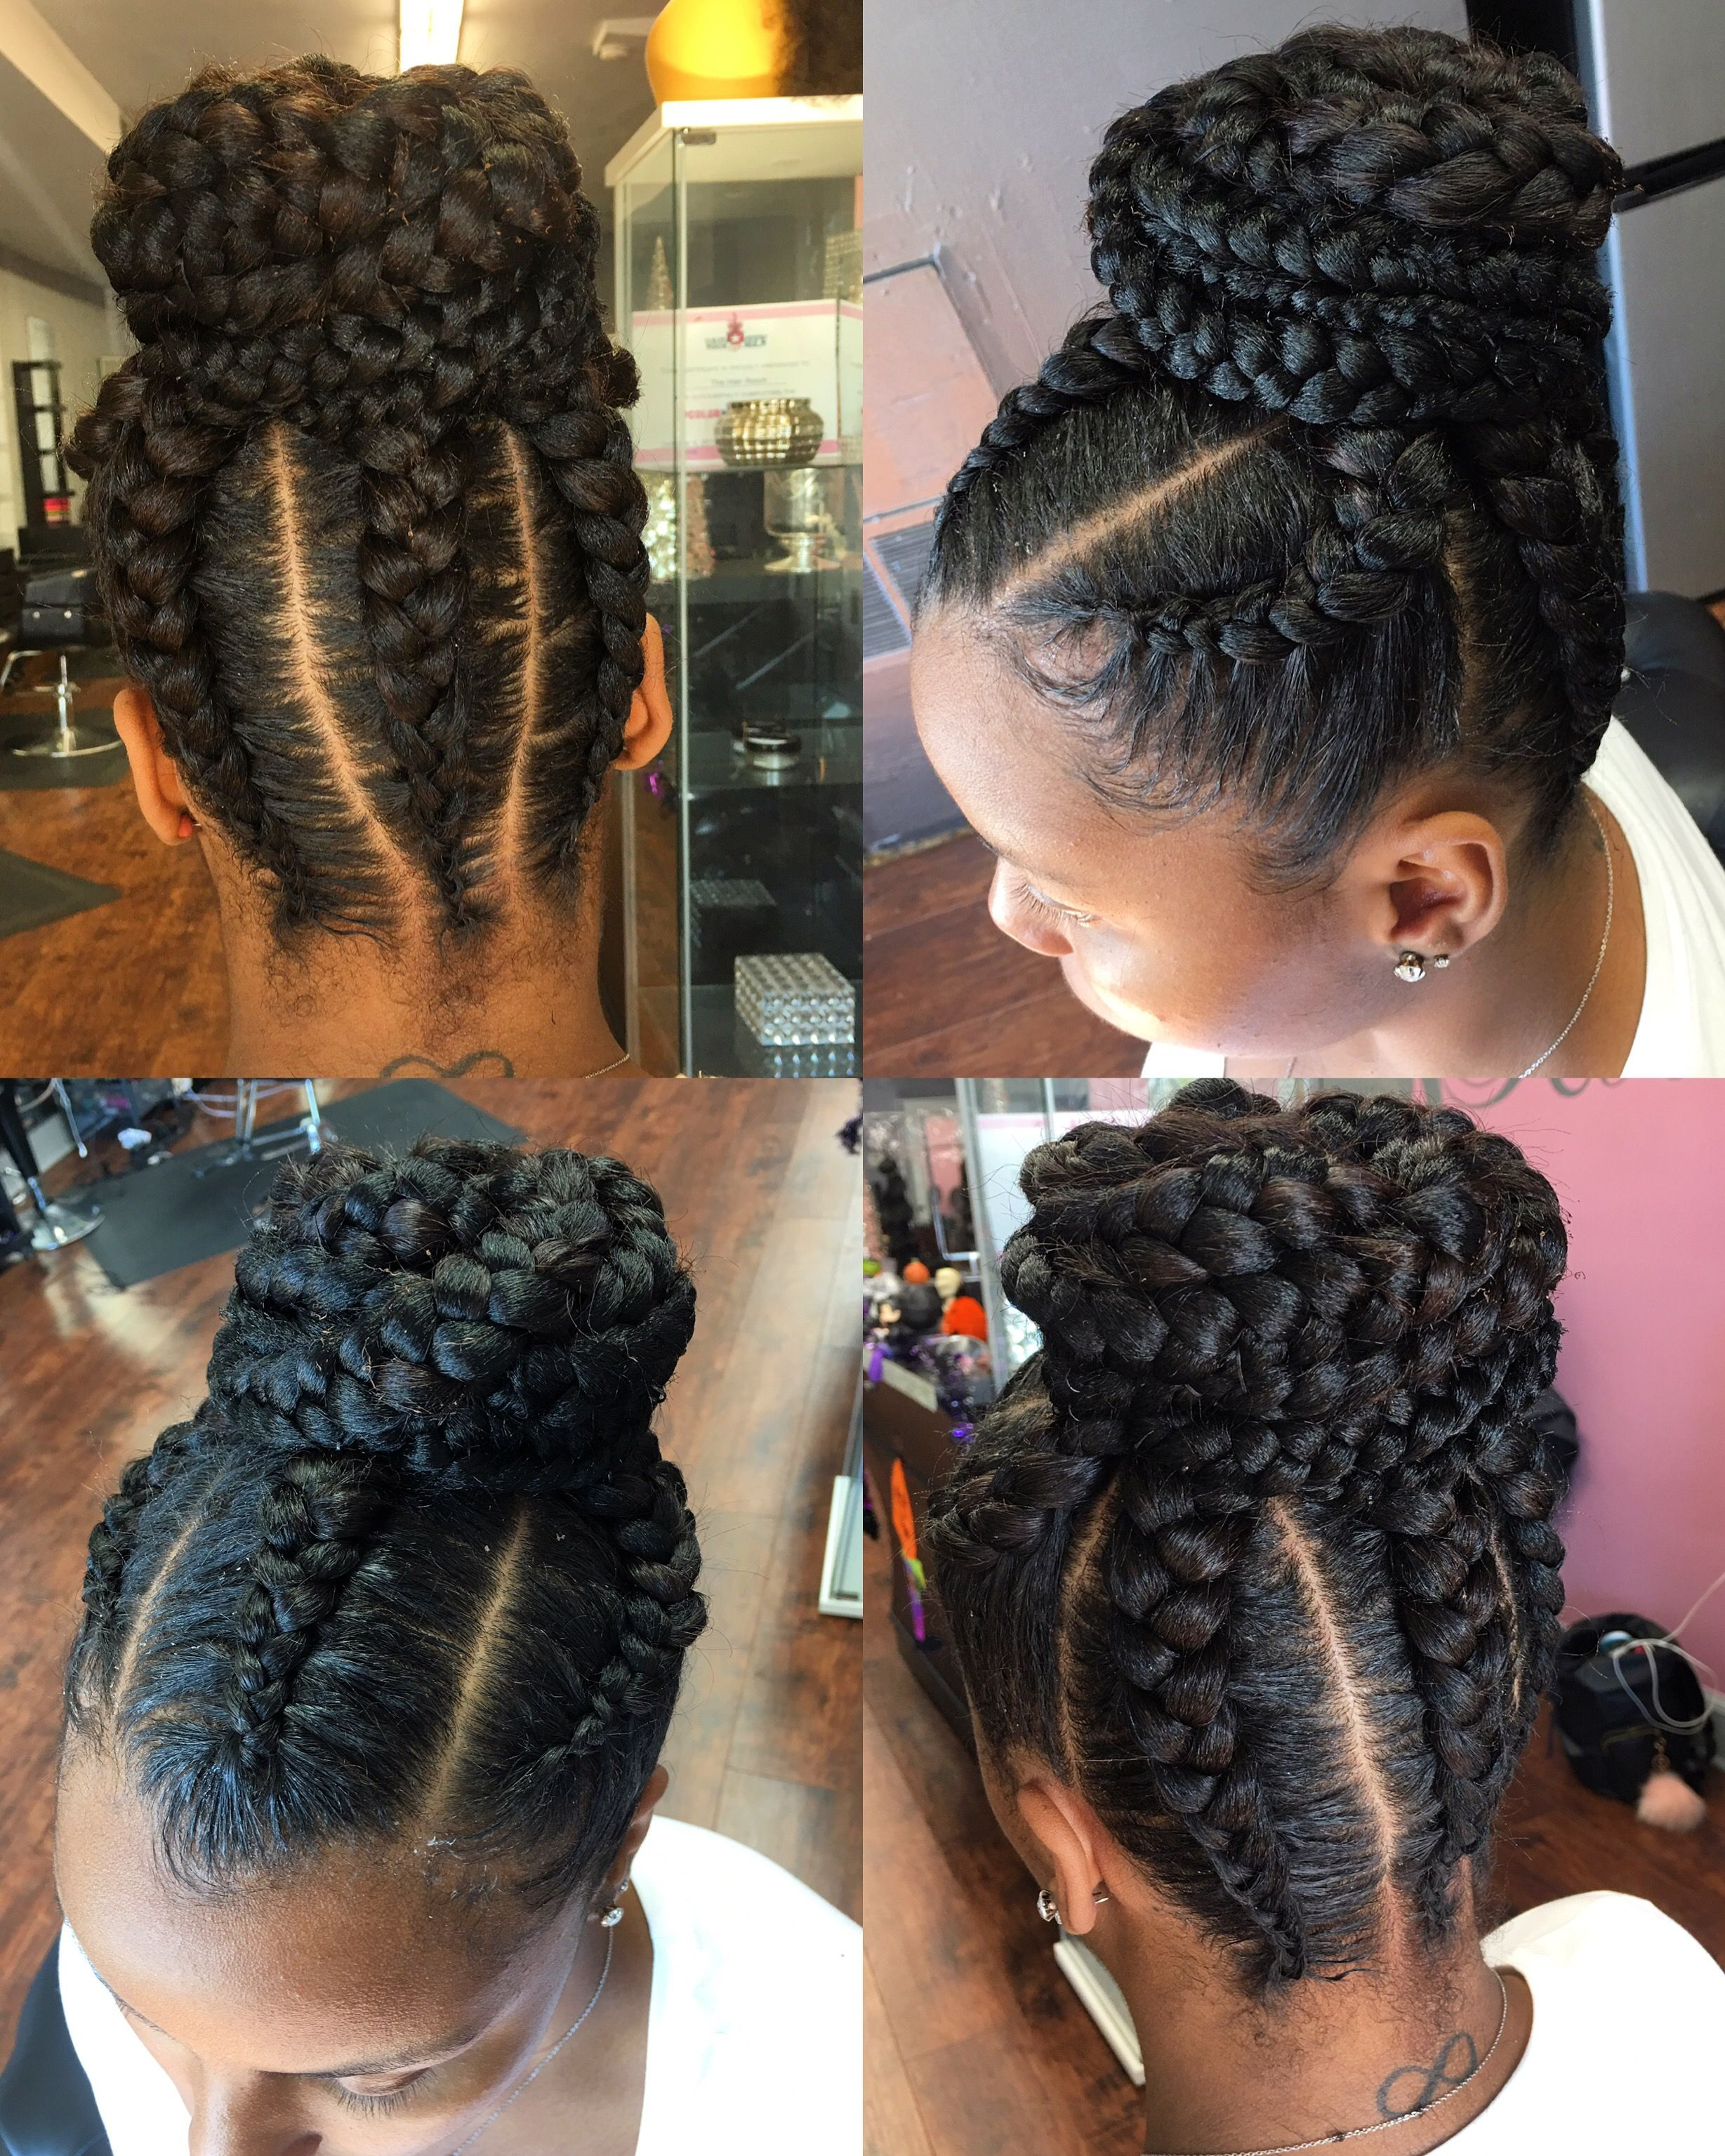 Fun Hairstyles With Box Braids You Can Try Natural Hair Styles Braided Hairstyles For Teens Cornrow Updo Hairstyles